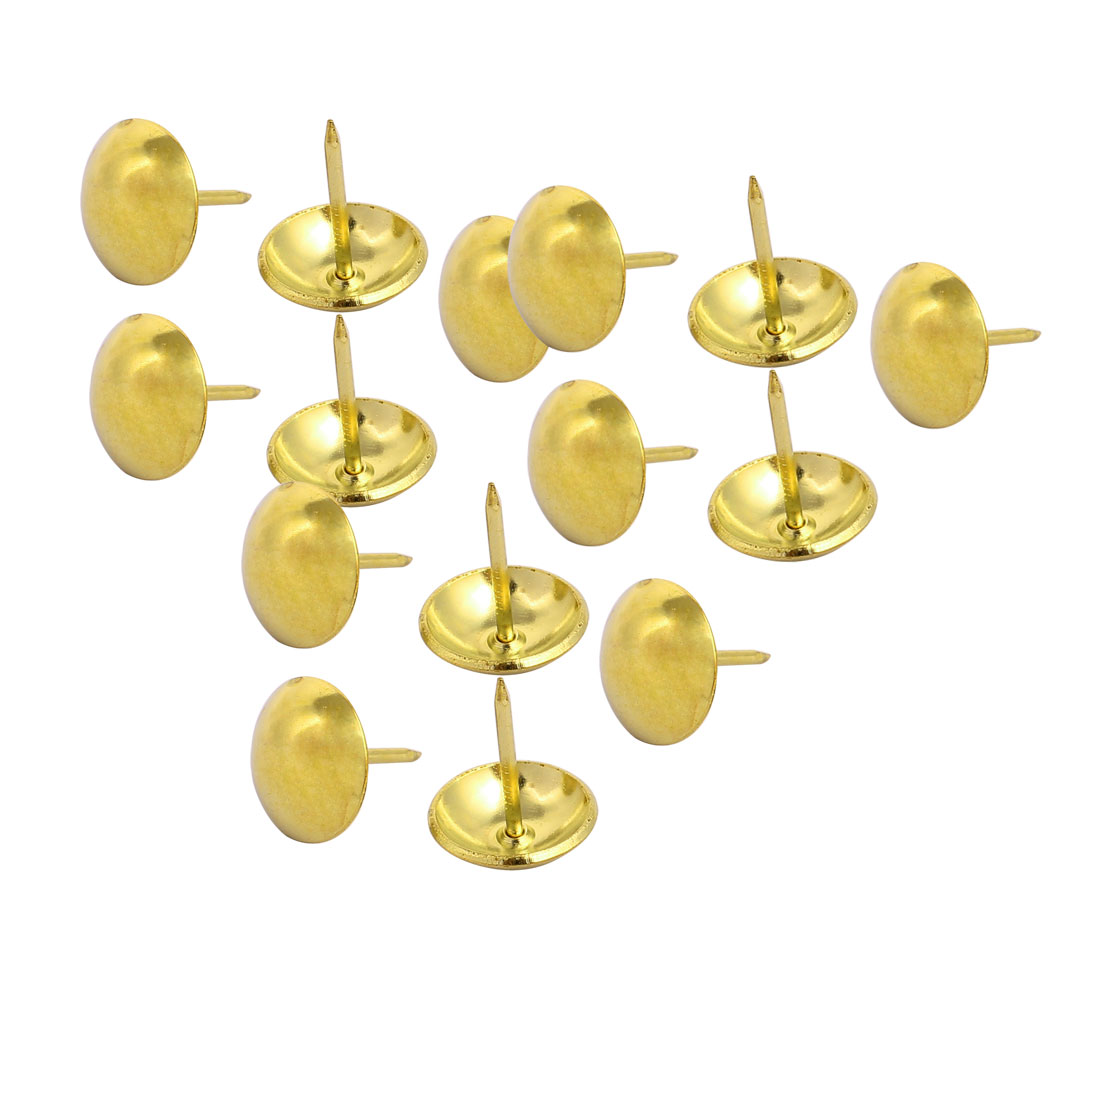 19mm Dia Metal Upholstery Nail Tack Stud Push Pin Doornail Gold Tone 15PCS